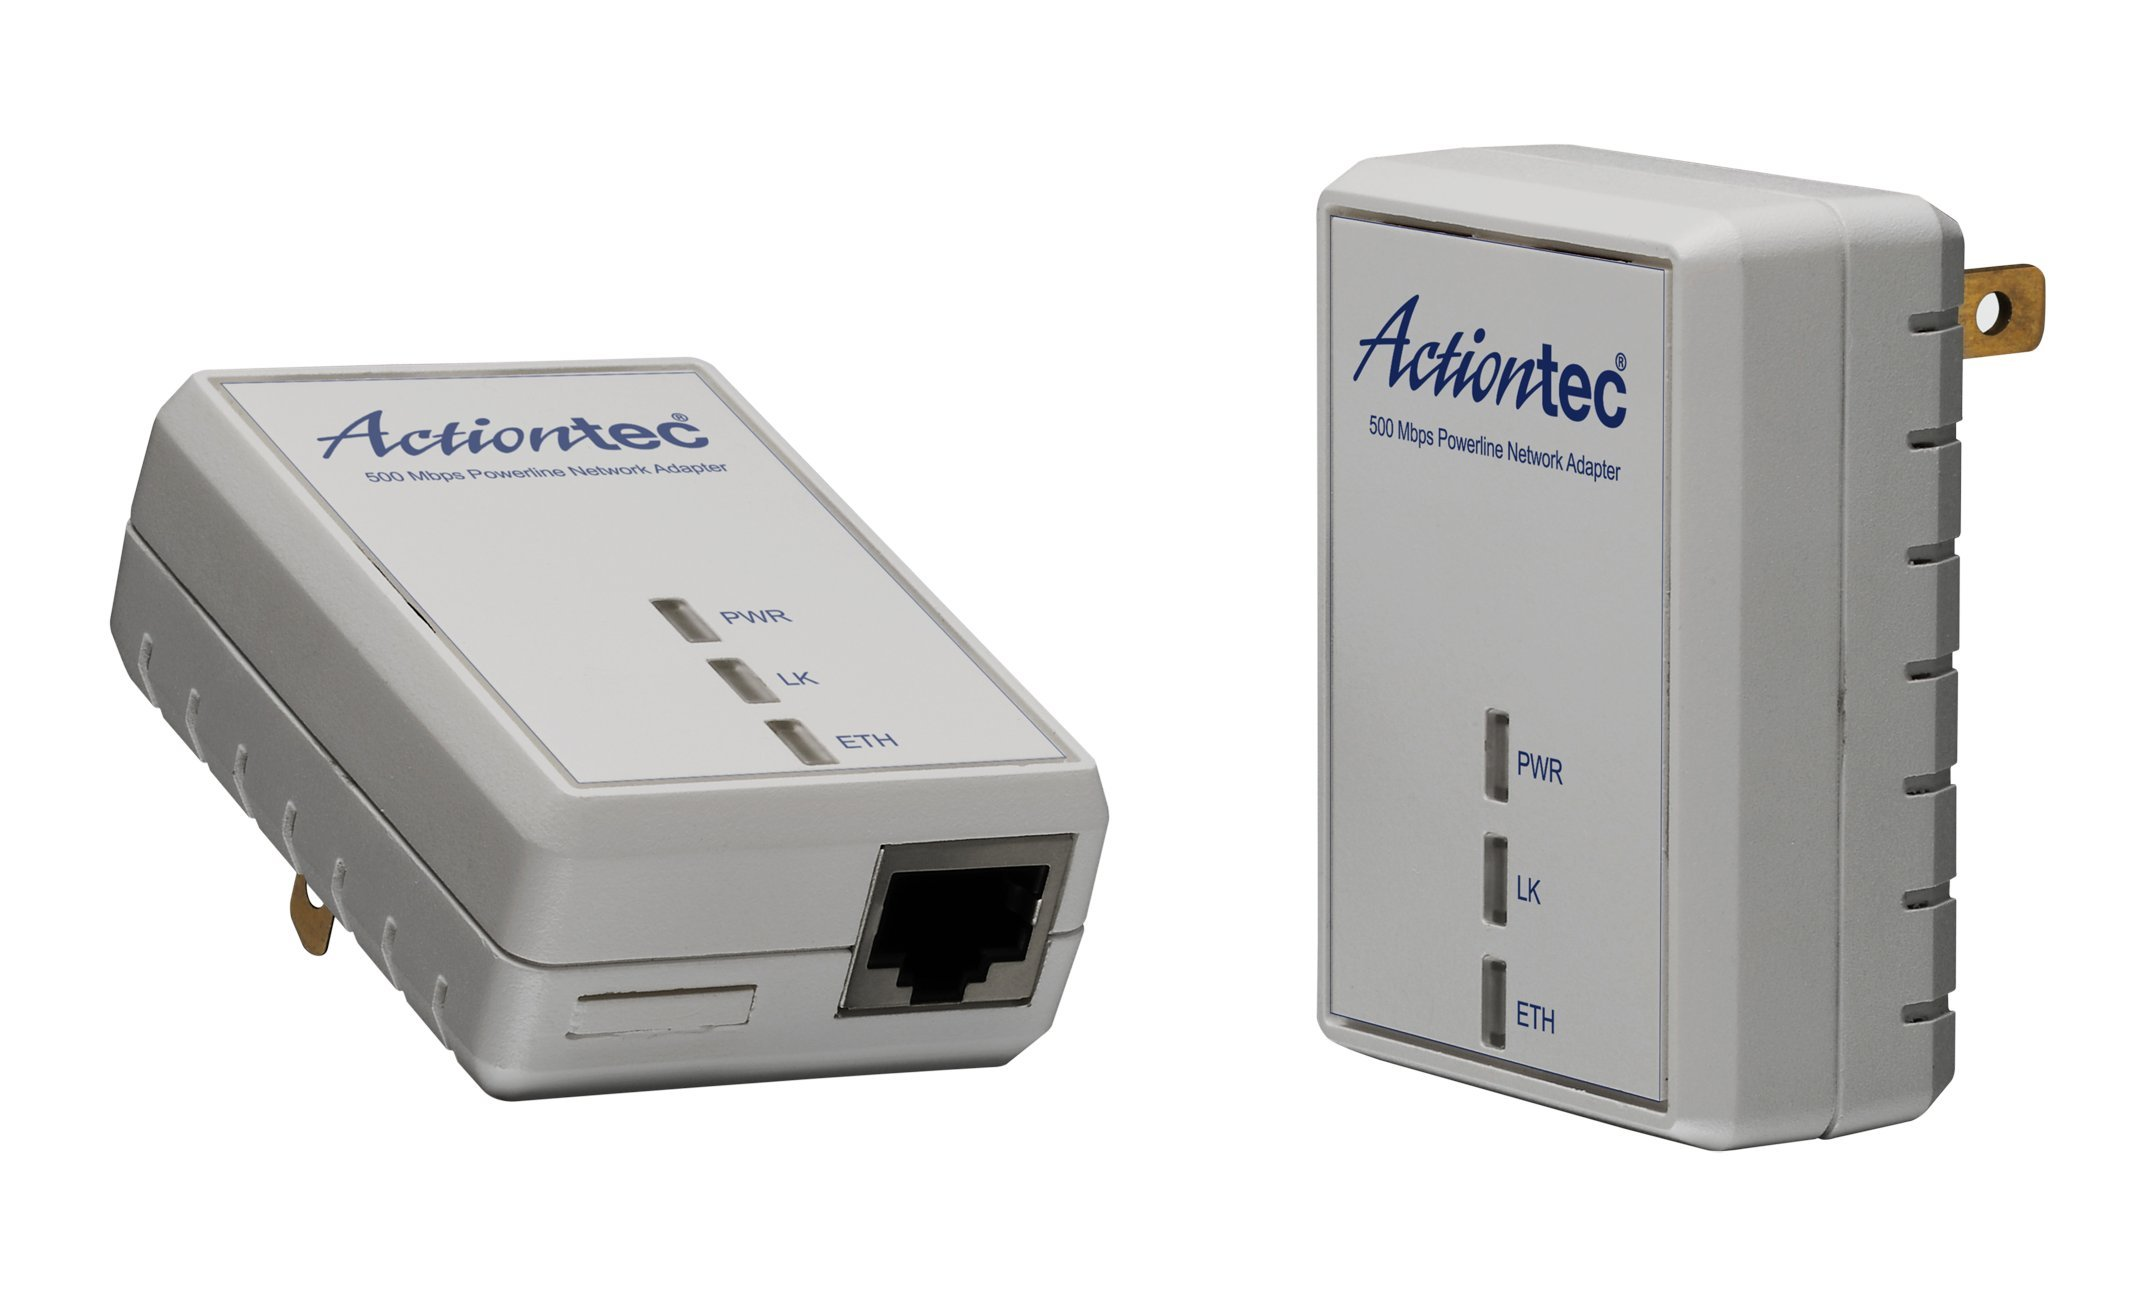 Actiontec PWR511K01 500 Mbps HomePlug HD Powerline Wall Plug Network Adapter Kit (2 Units) by Actiontec